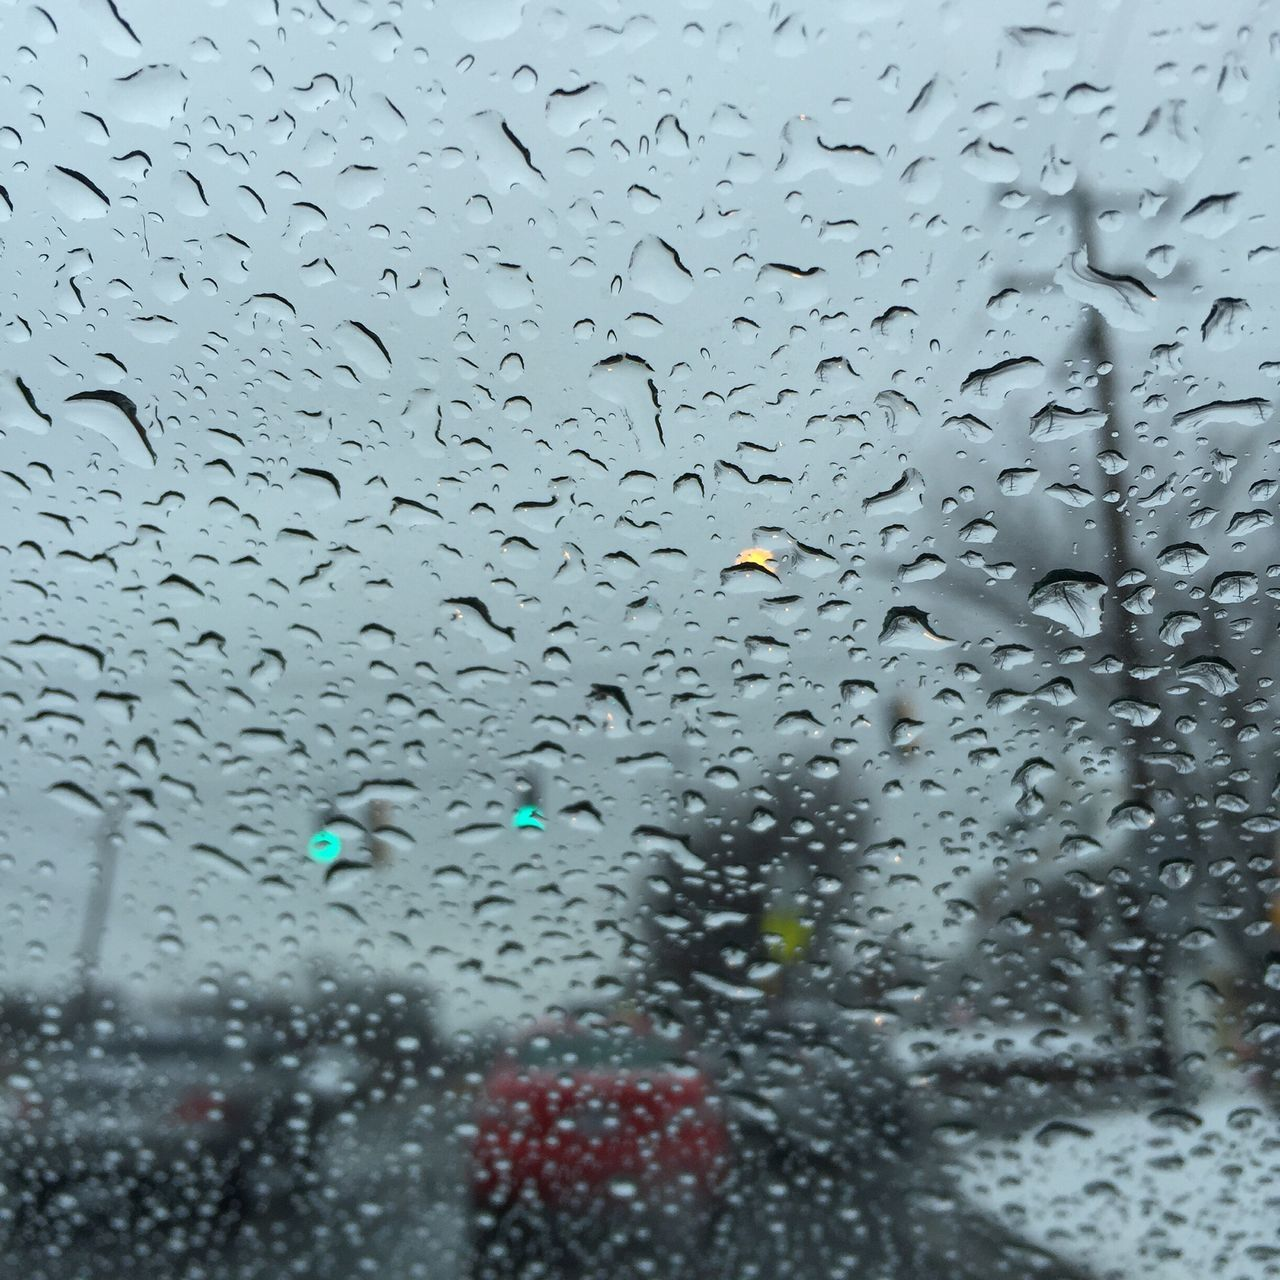 drop, rain, transparent, glass - material, wet, window, vehicle interior, raindrop, weather, rainy season, water, car, car interior, glass, indoors, land vehicle, windshield, no people, day, full frame, looking through window, transportation, close-up, backgrounds, nature, sky